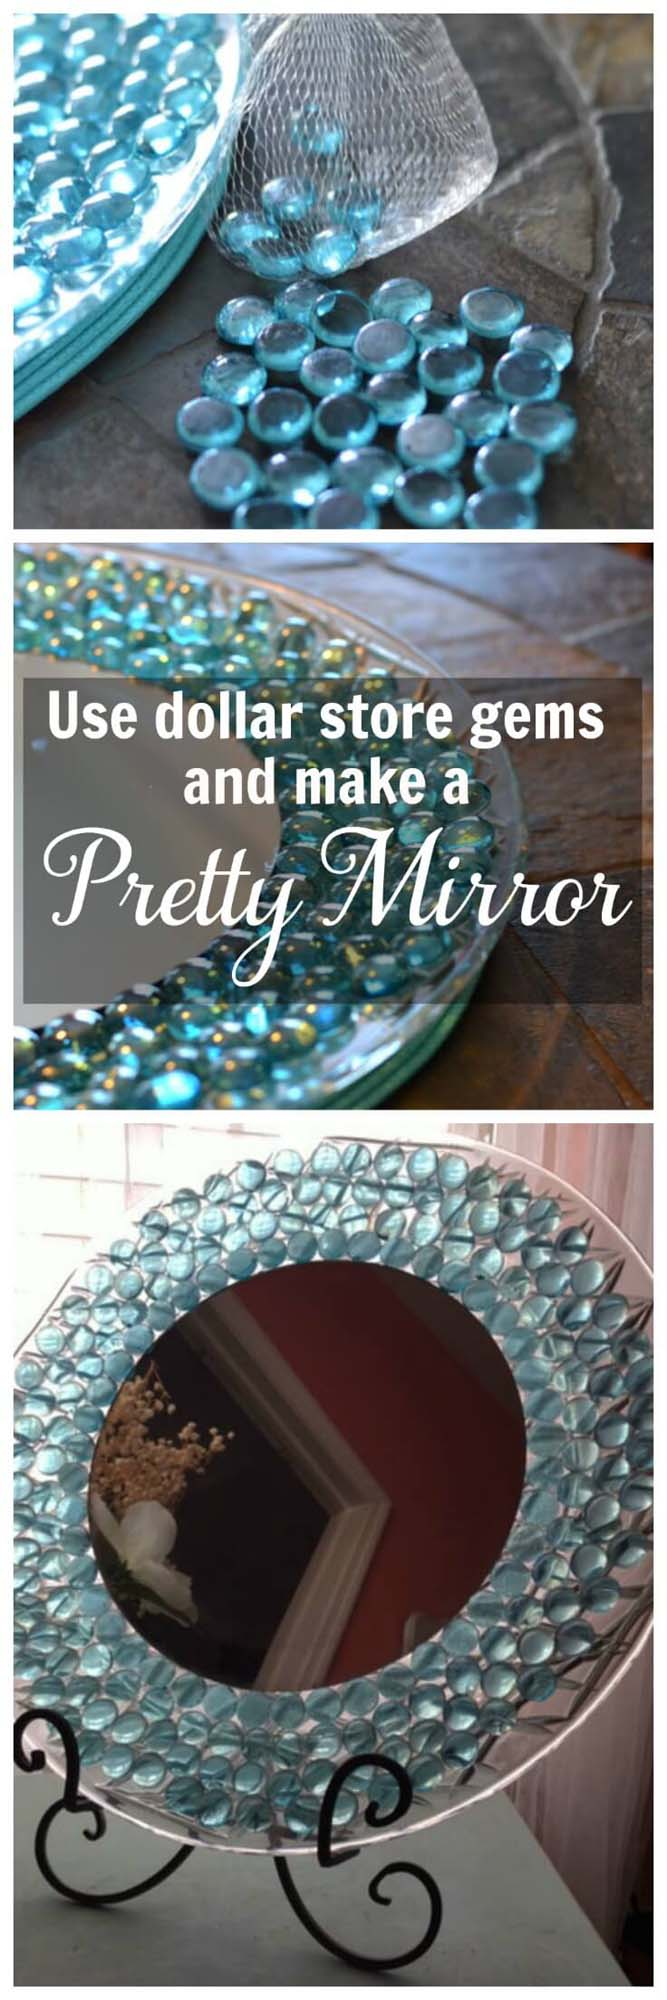 Dresser Mirror #dollarstore #diy #homedecor #decorhomeideas